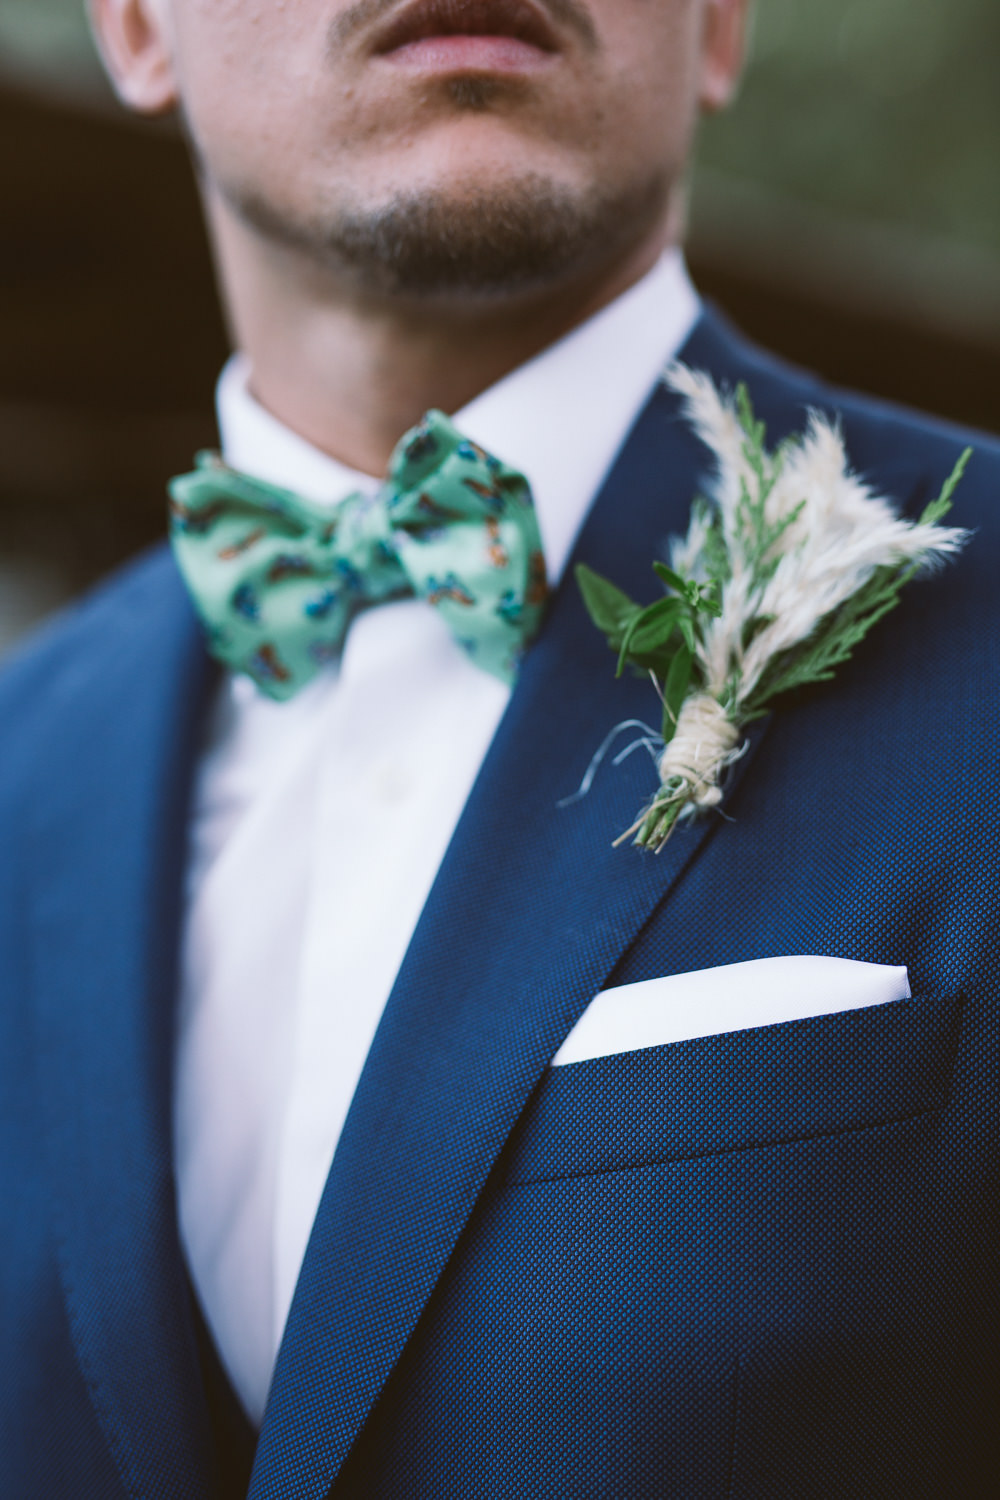 Groom Navy Suit Bow Tie Buttonhole Flowers Botanical Dark Green Velvet Pampas Grass Wedding Ideas Bárbara Araújo Photography